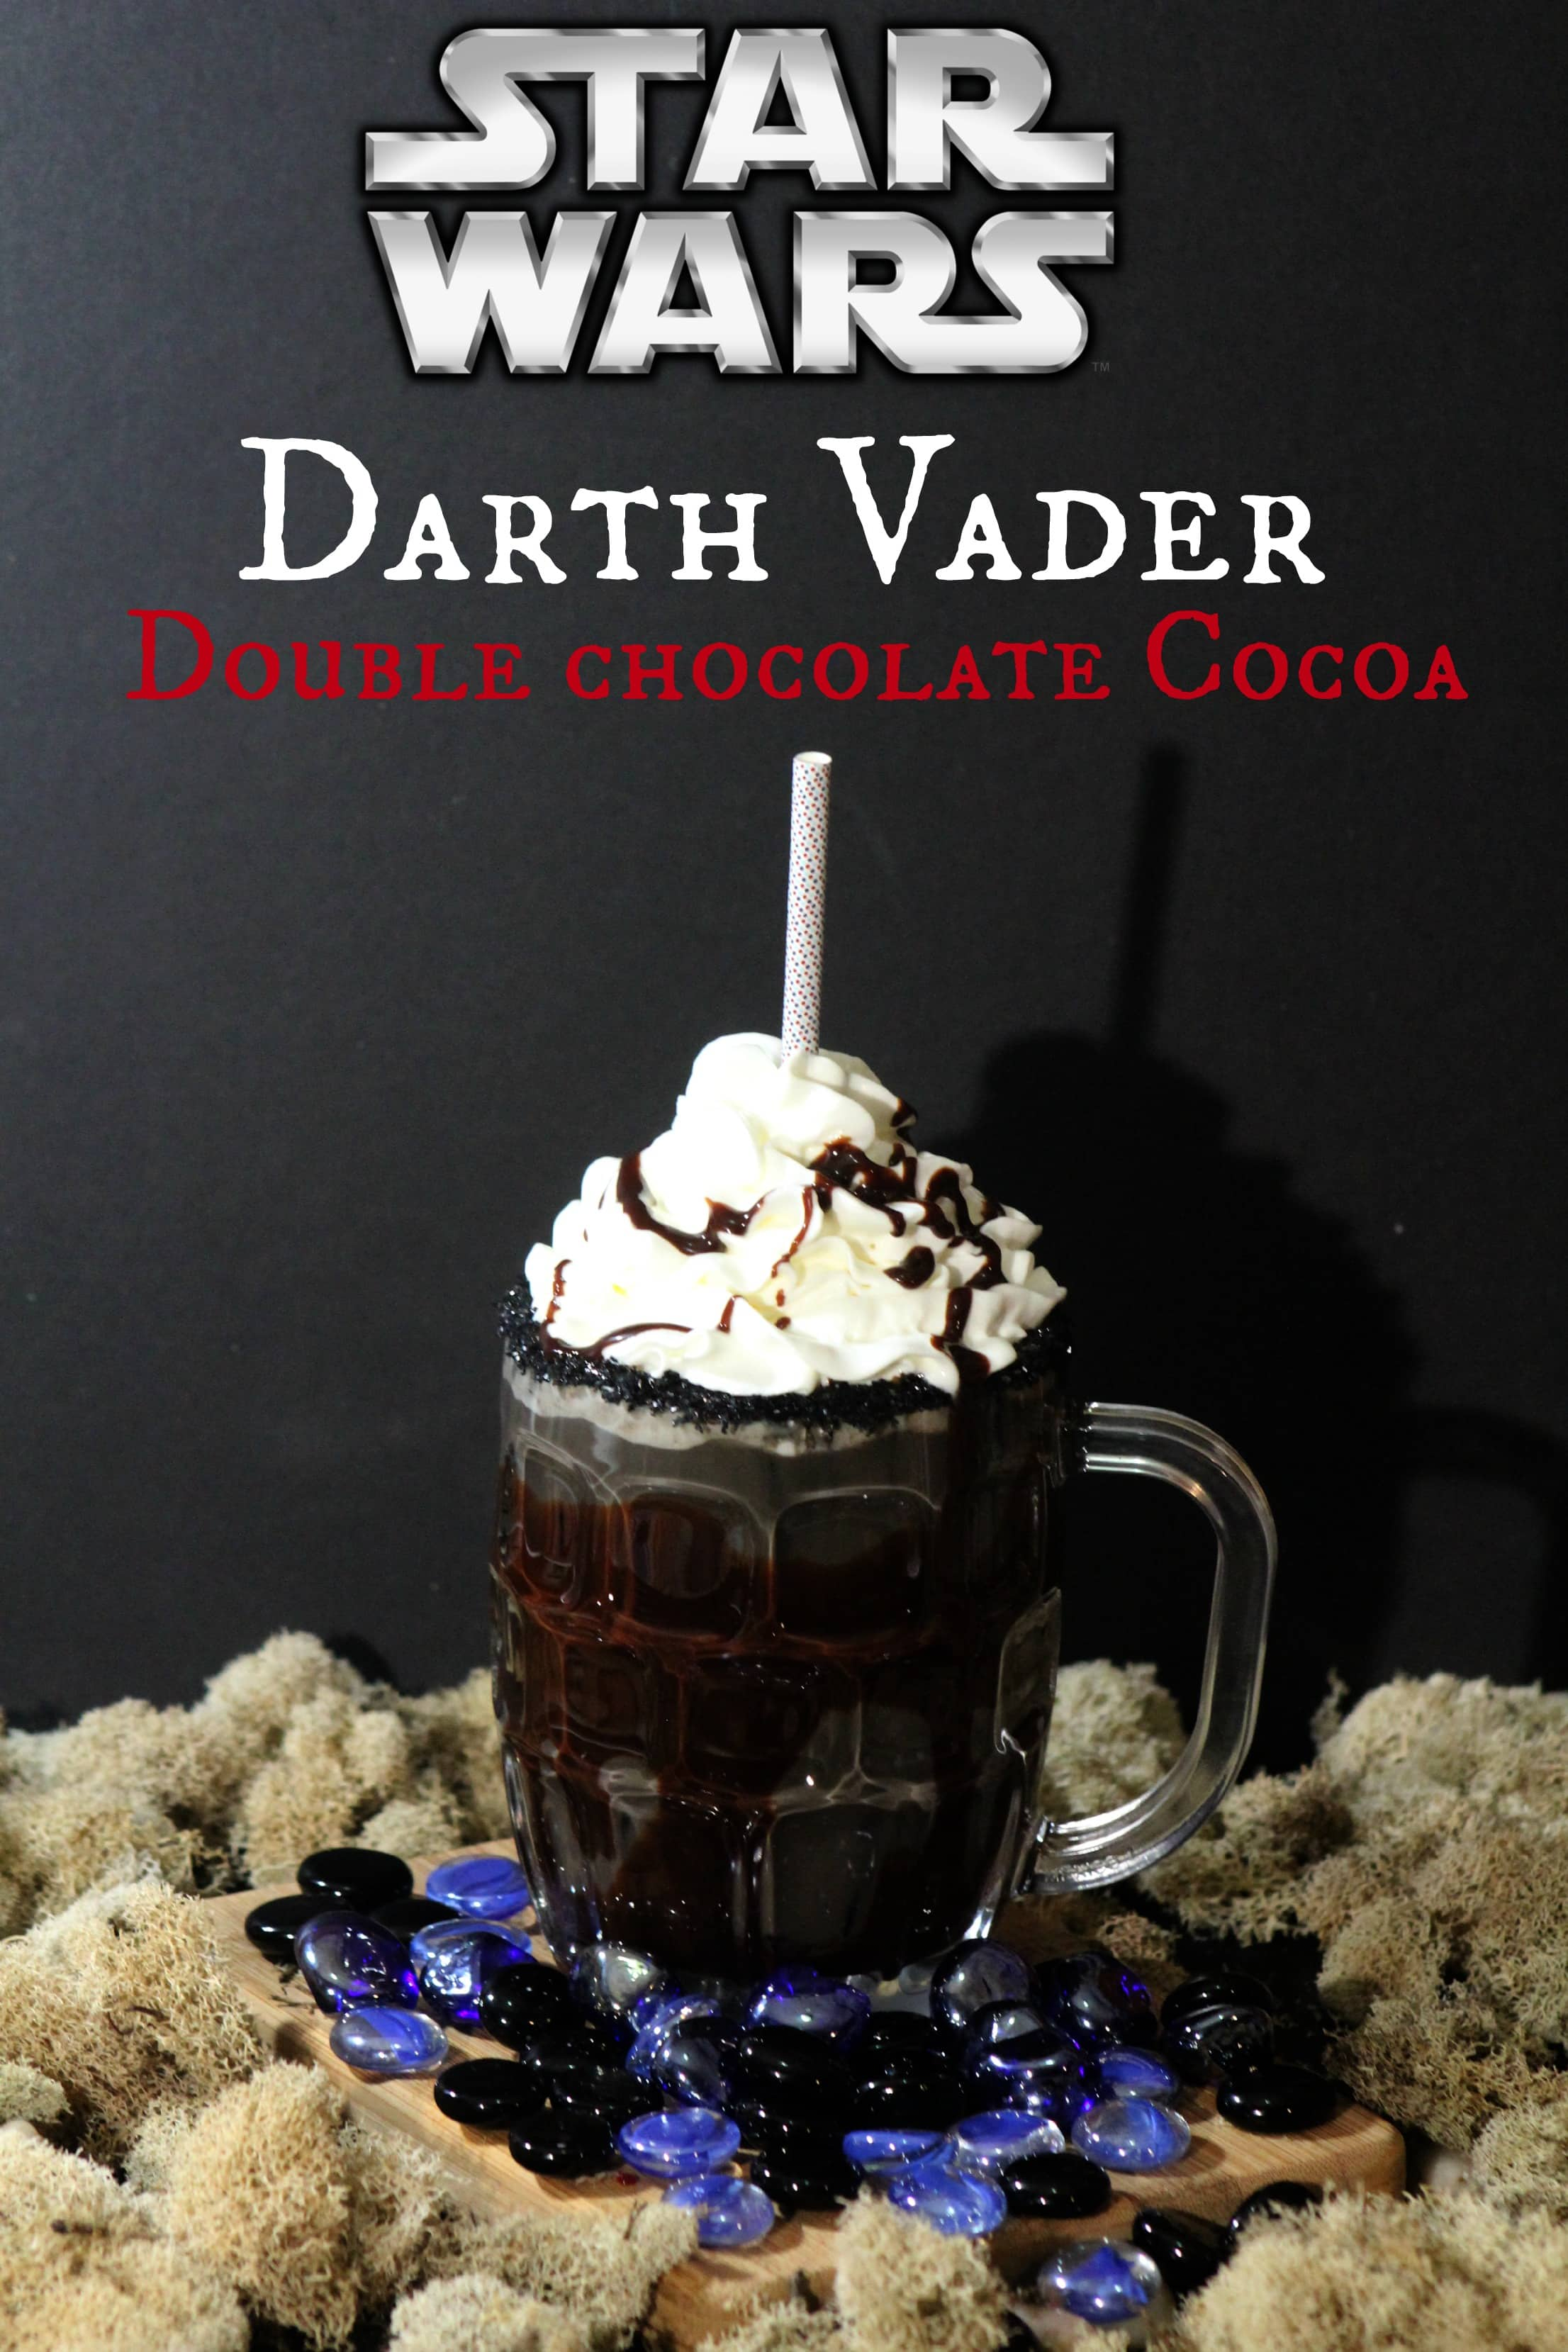 Star Wars Fans! Darth Vader Double Chocolate Cocoa Recipe #TheForceAwakens